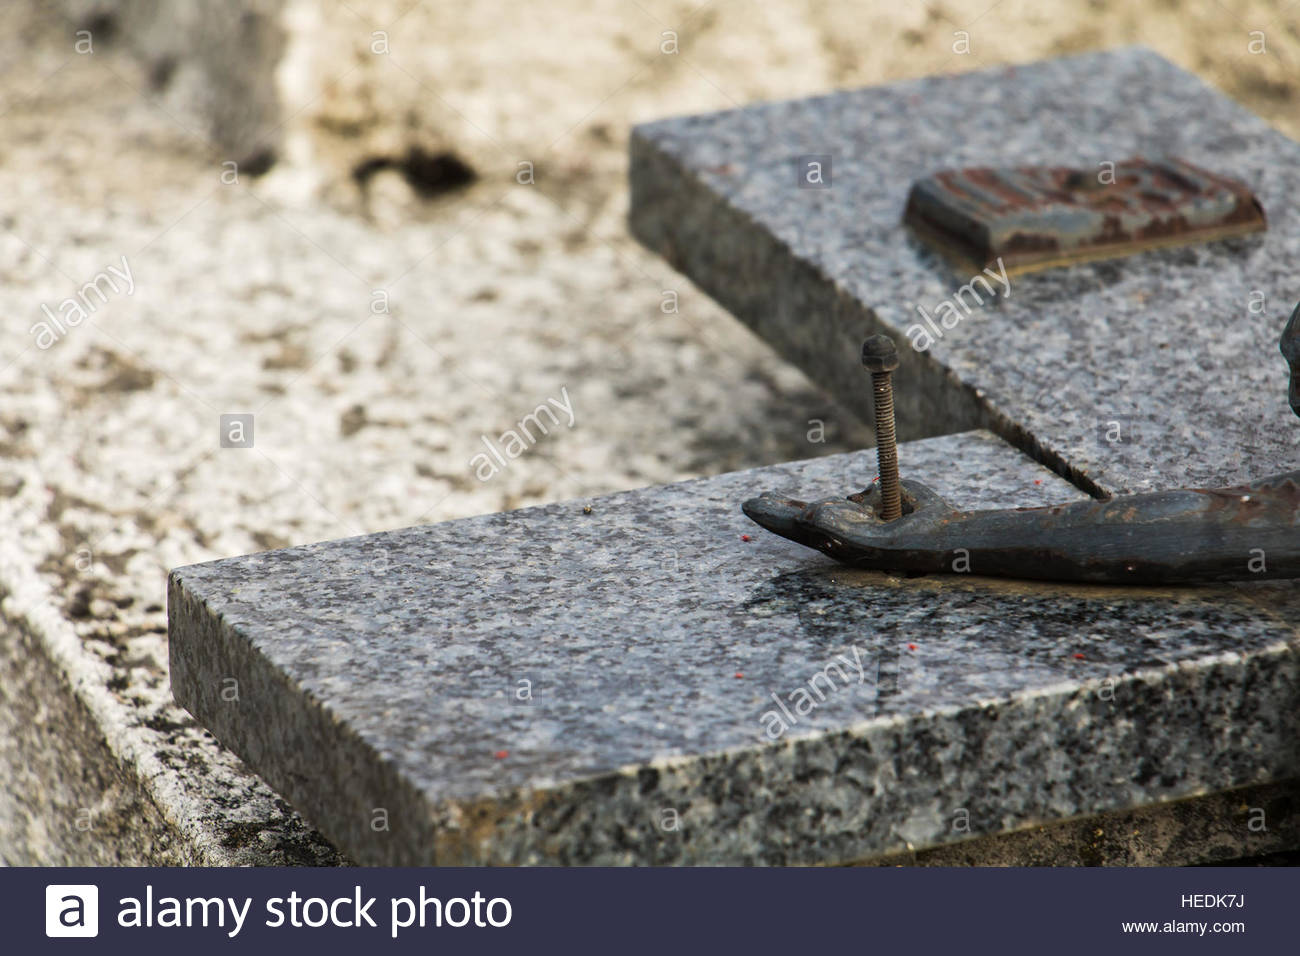 Village of  Rocamadour departement Lot, region Midi-Pyrenees France. Detail View of a Cross on the Cemetery Stock Photo